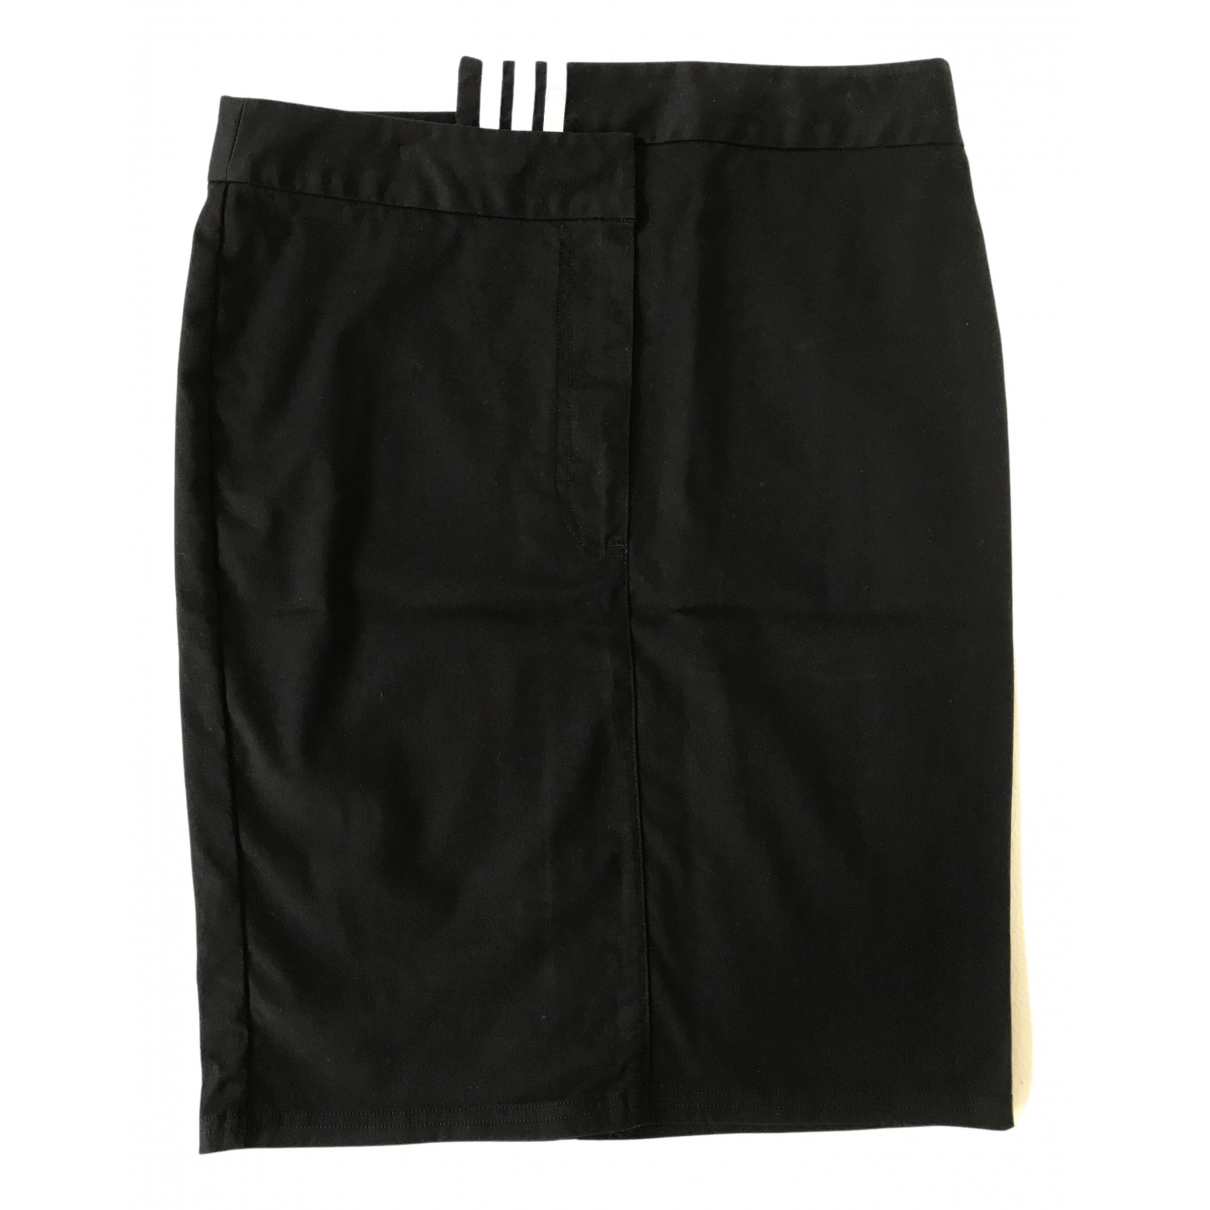 Y-3 By Yohji Yamamoto \N Black Cotton - elasthane skirt for Women 40 FR